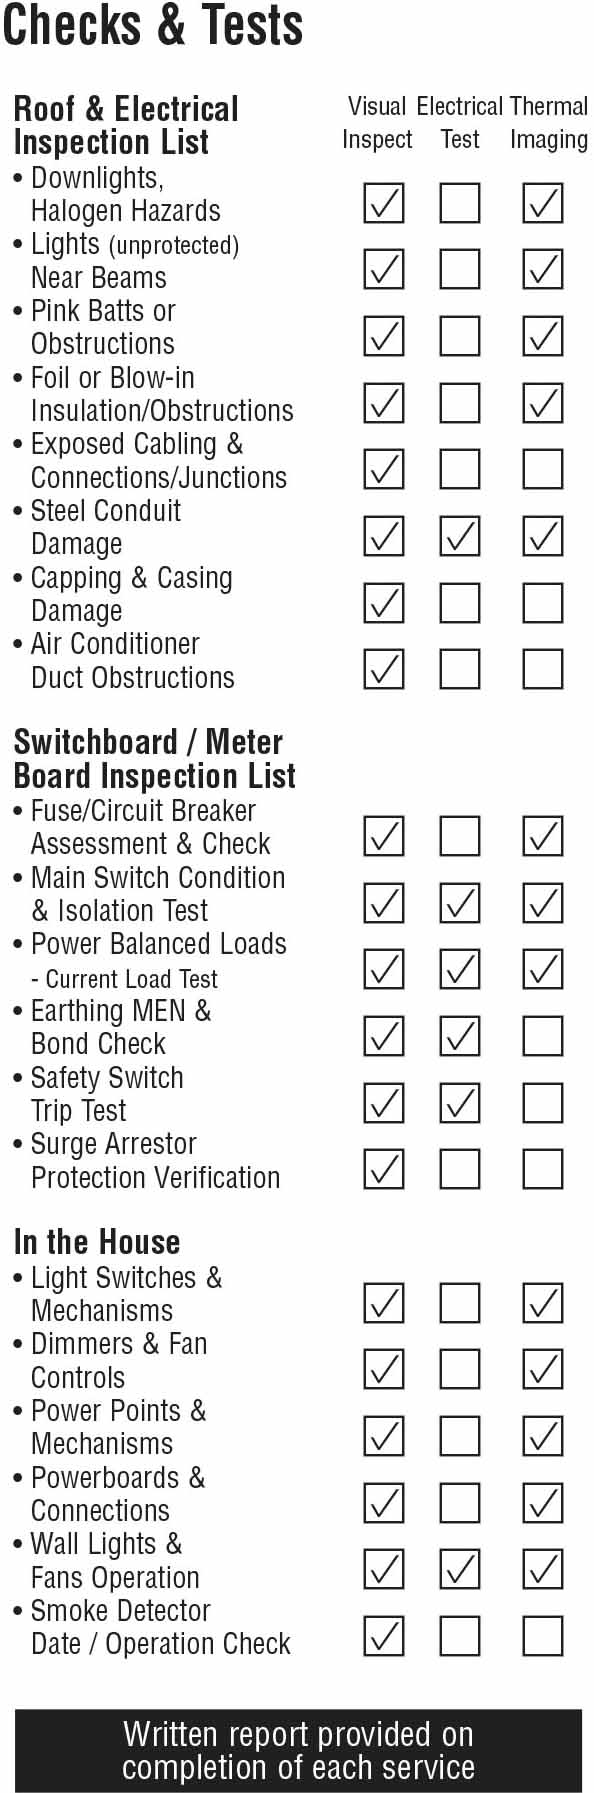 Electrical Safety Checks & Tests